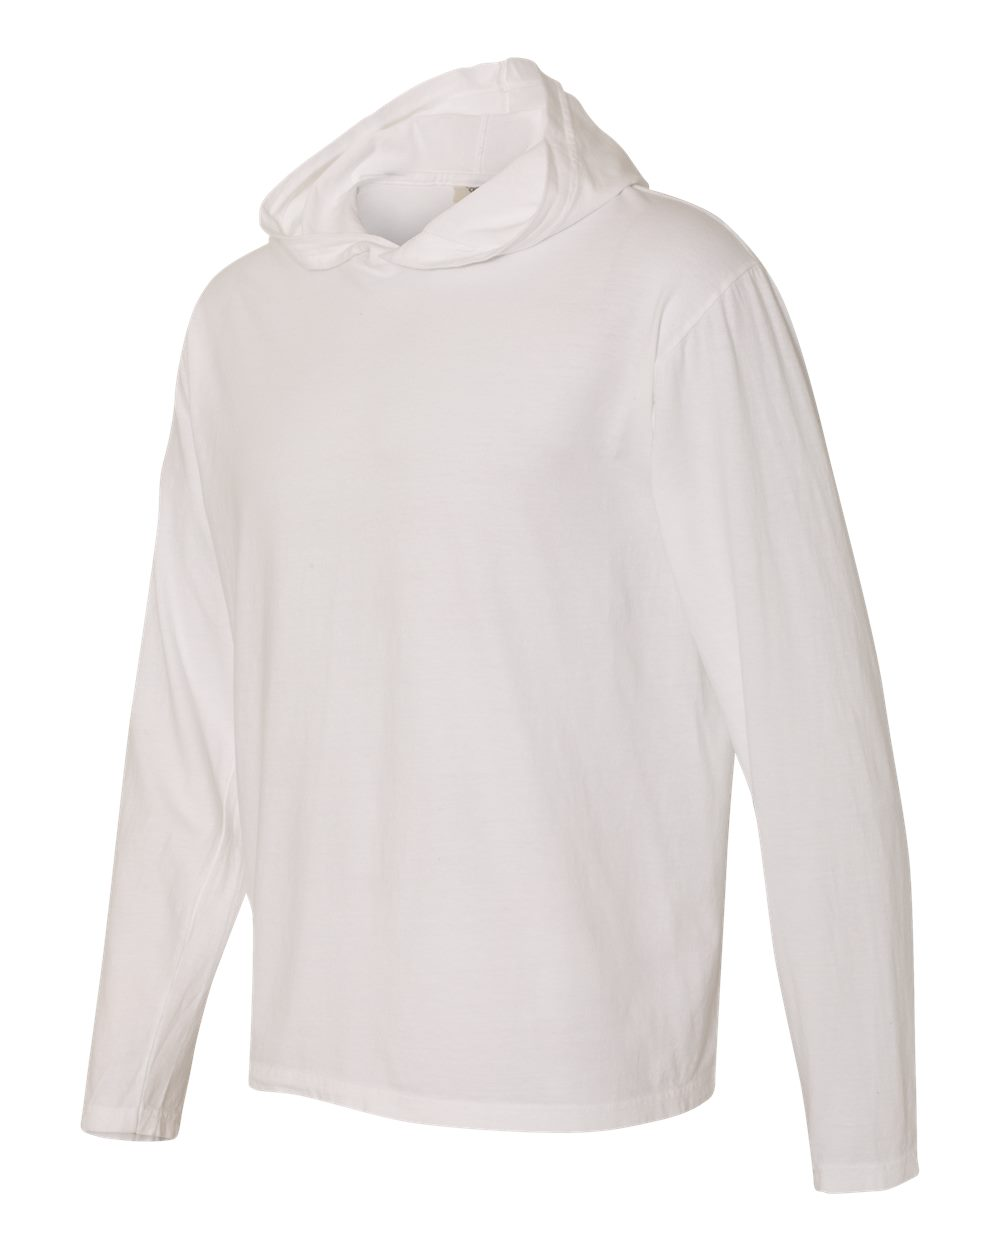 Comfort Colors 4900 - Garment Dyed Hooded Long Sleeve Tee $10.55 ...